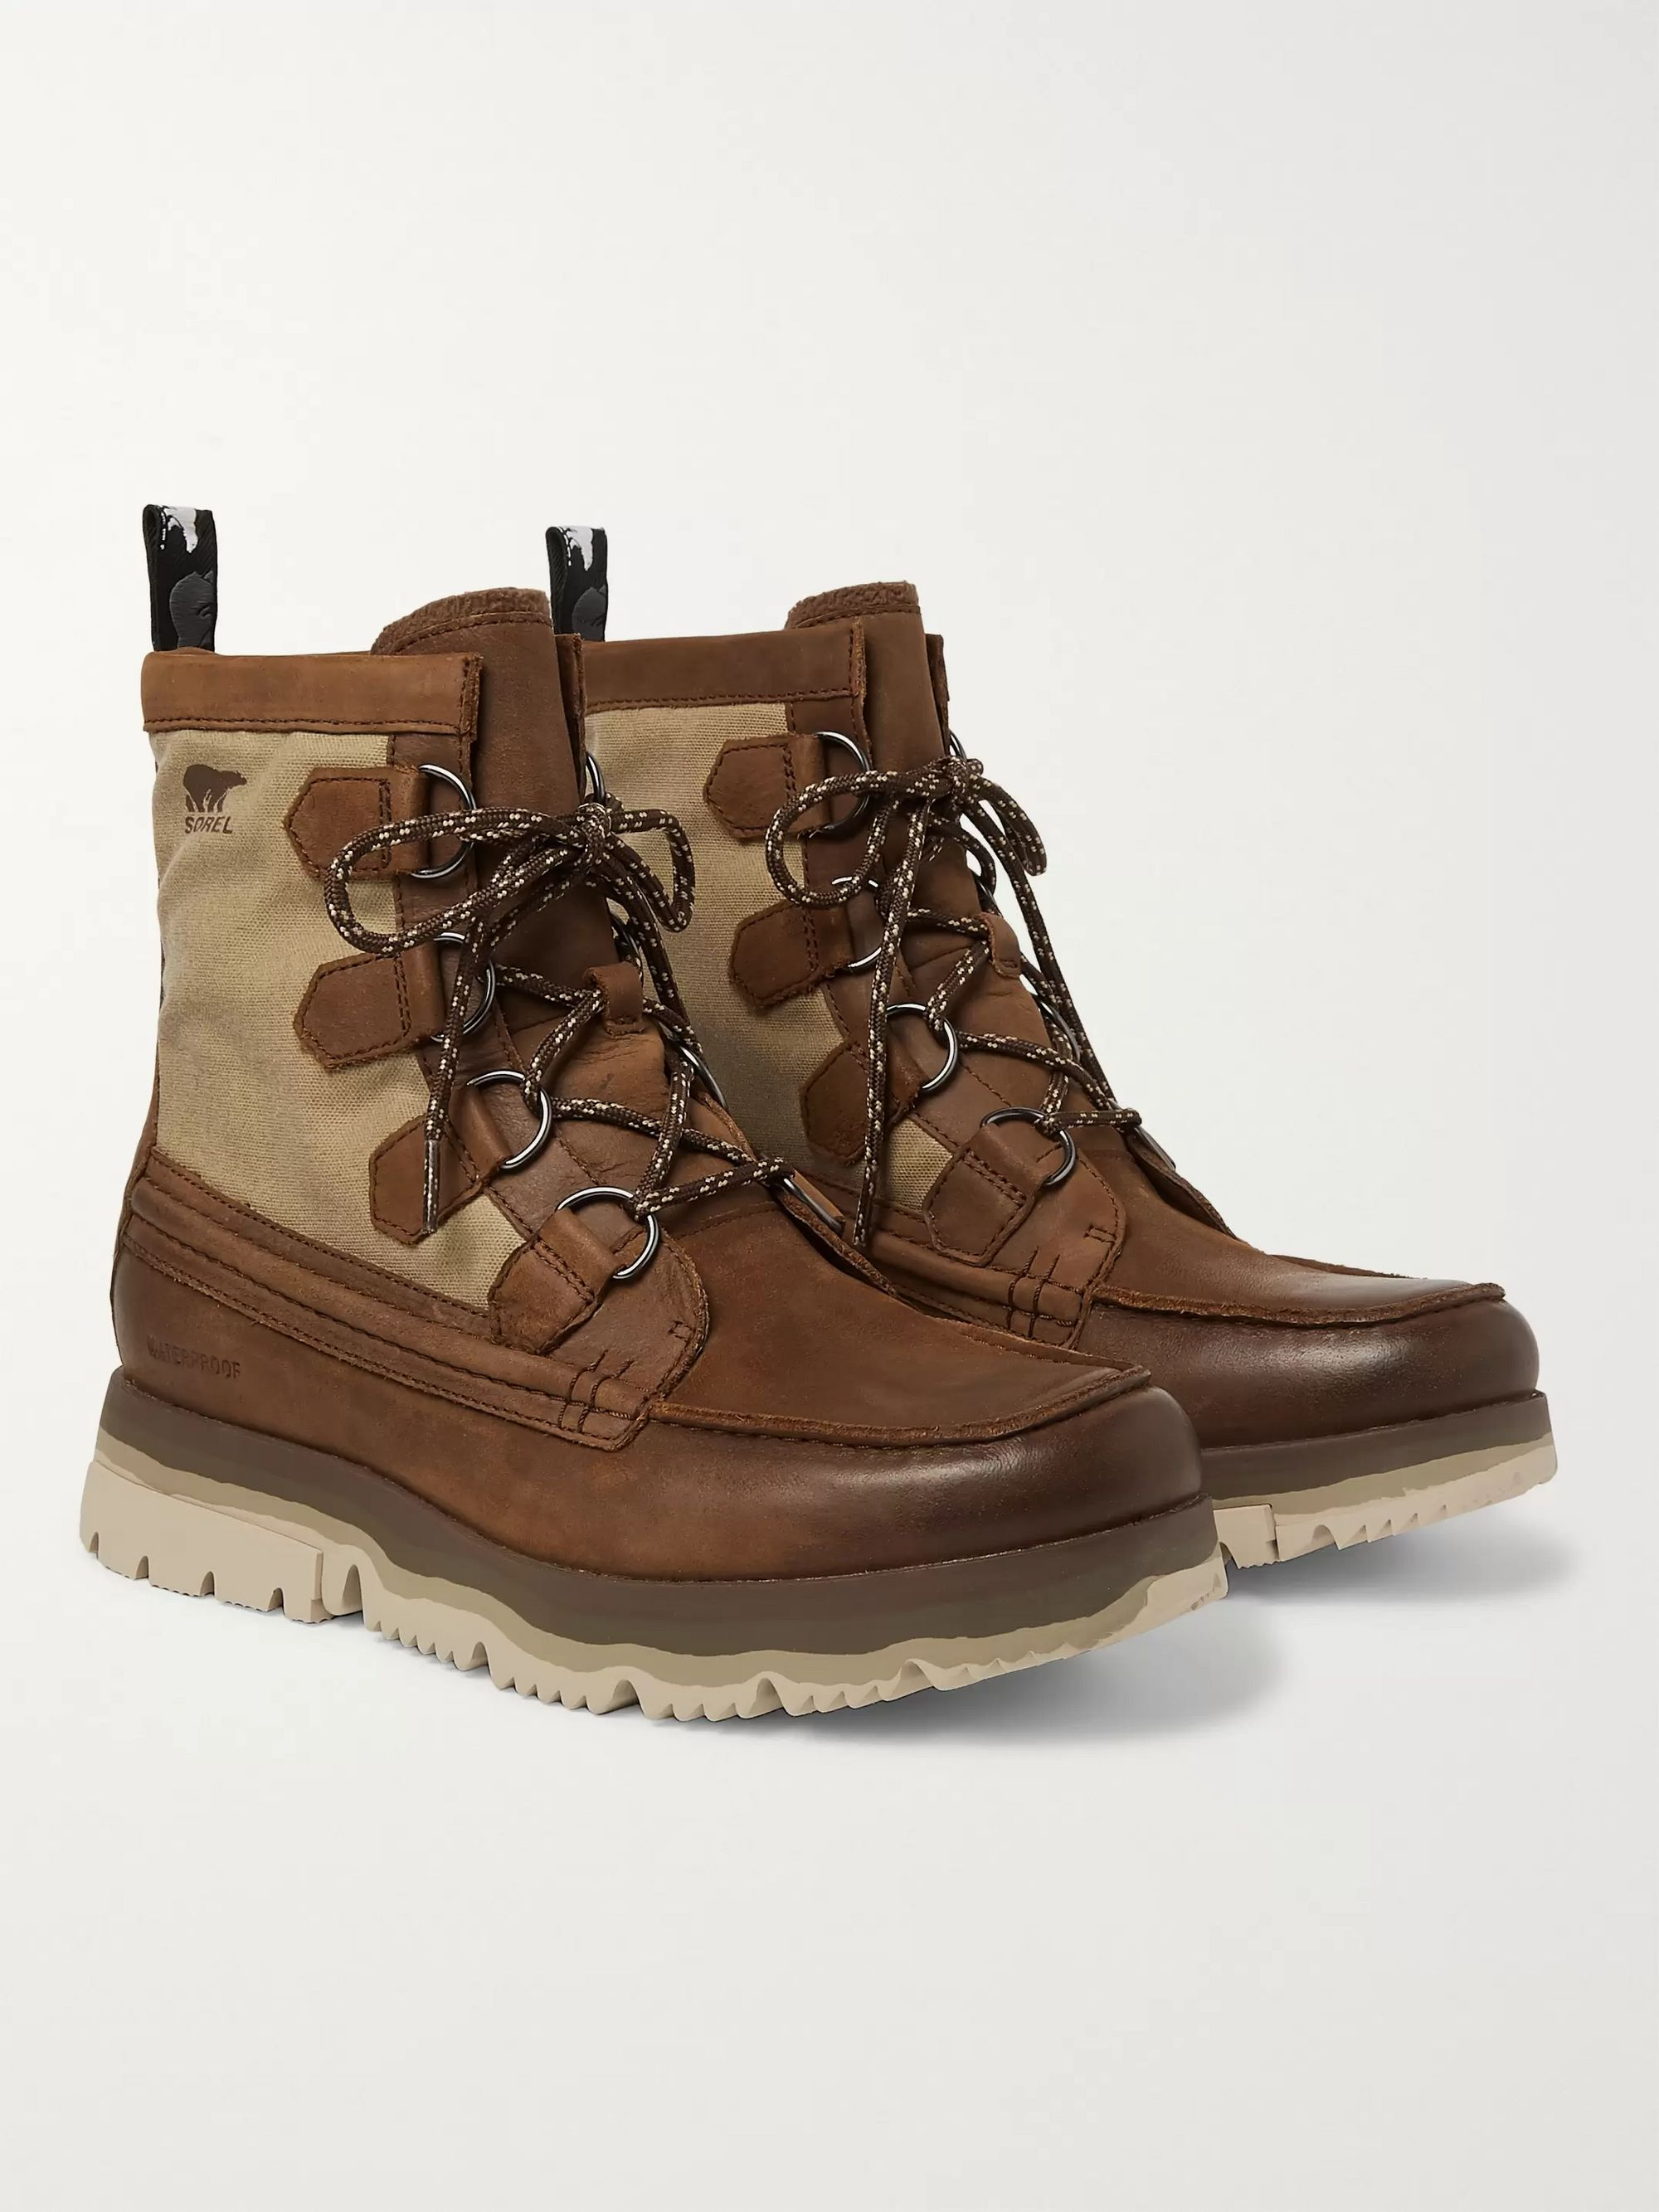 Atlis Caribou Waterproof Leather And Canvas Boots by Sorel